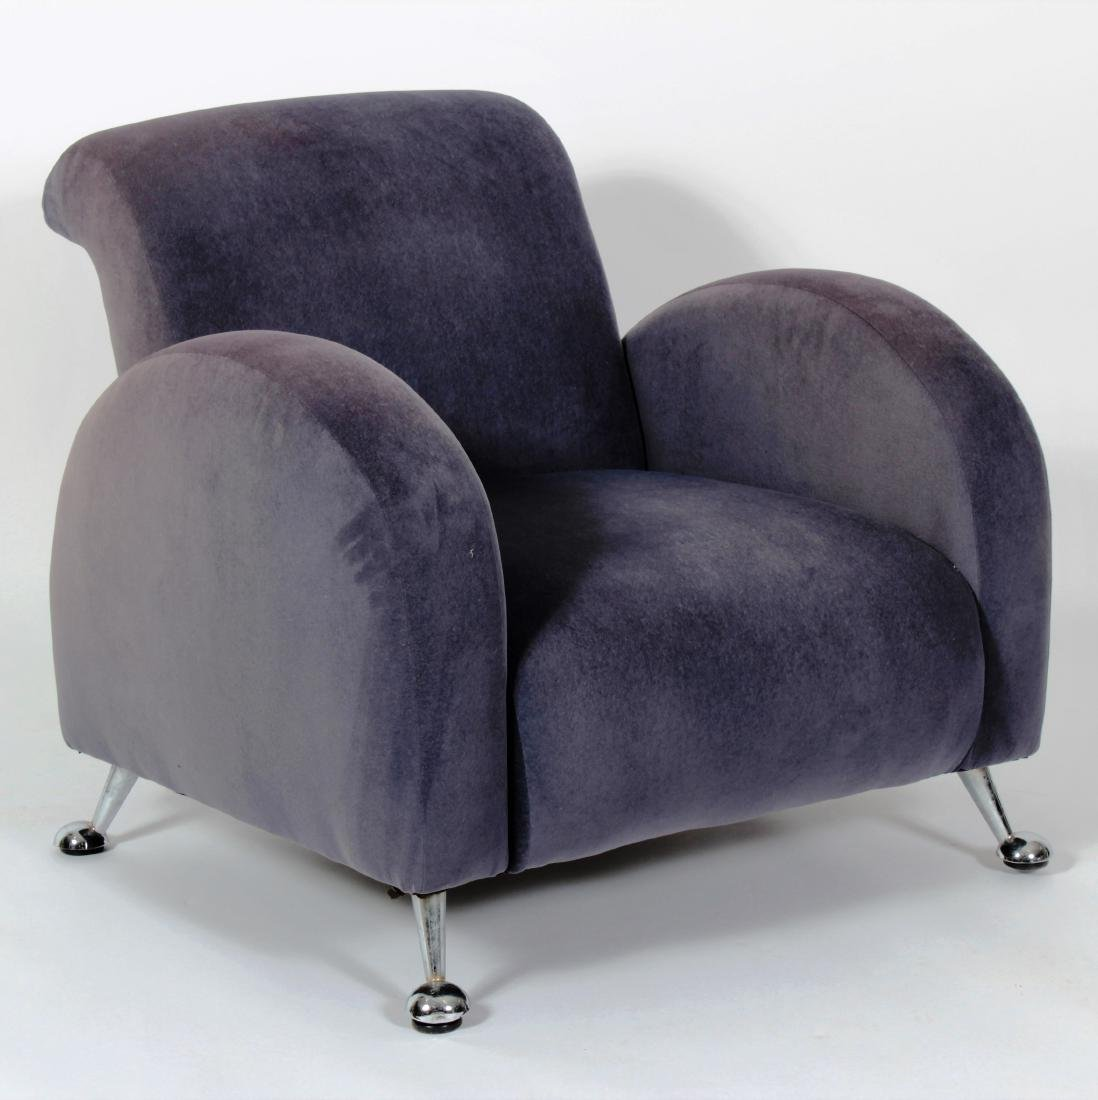 Club Chair on Metal Feet w/ Microsuede Upholstery